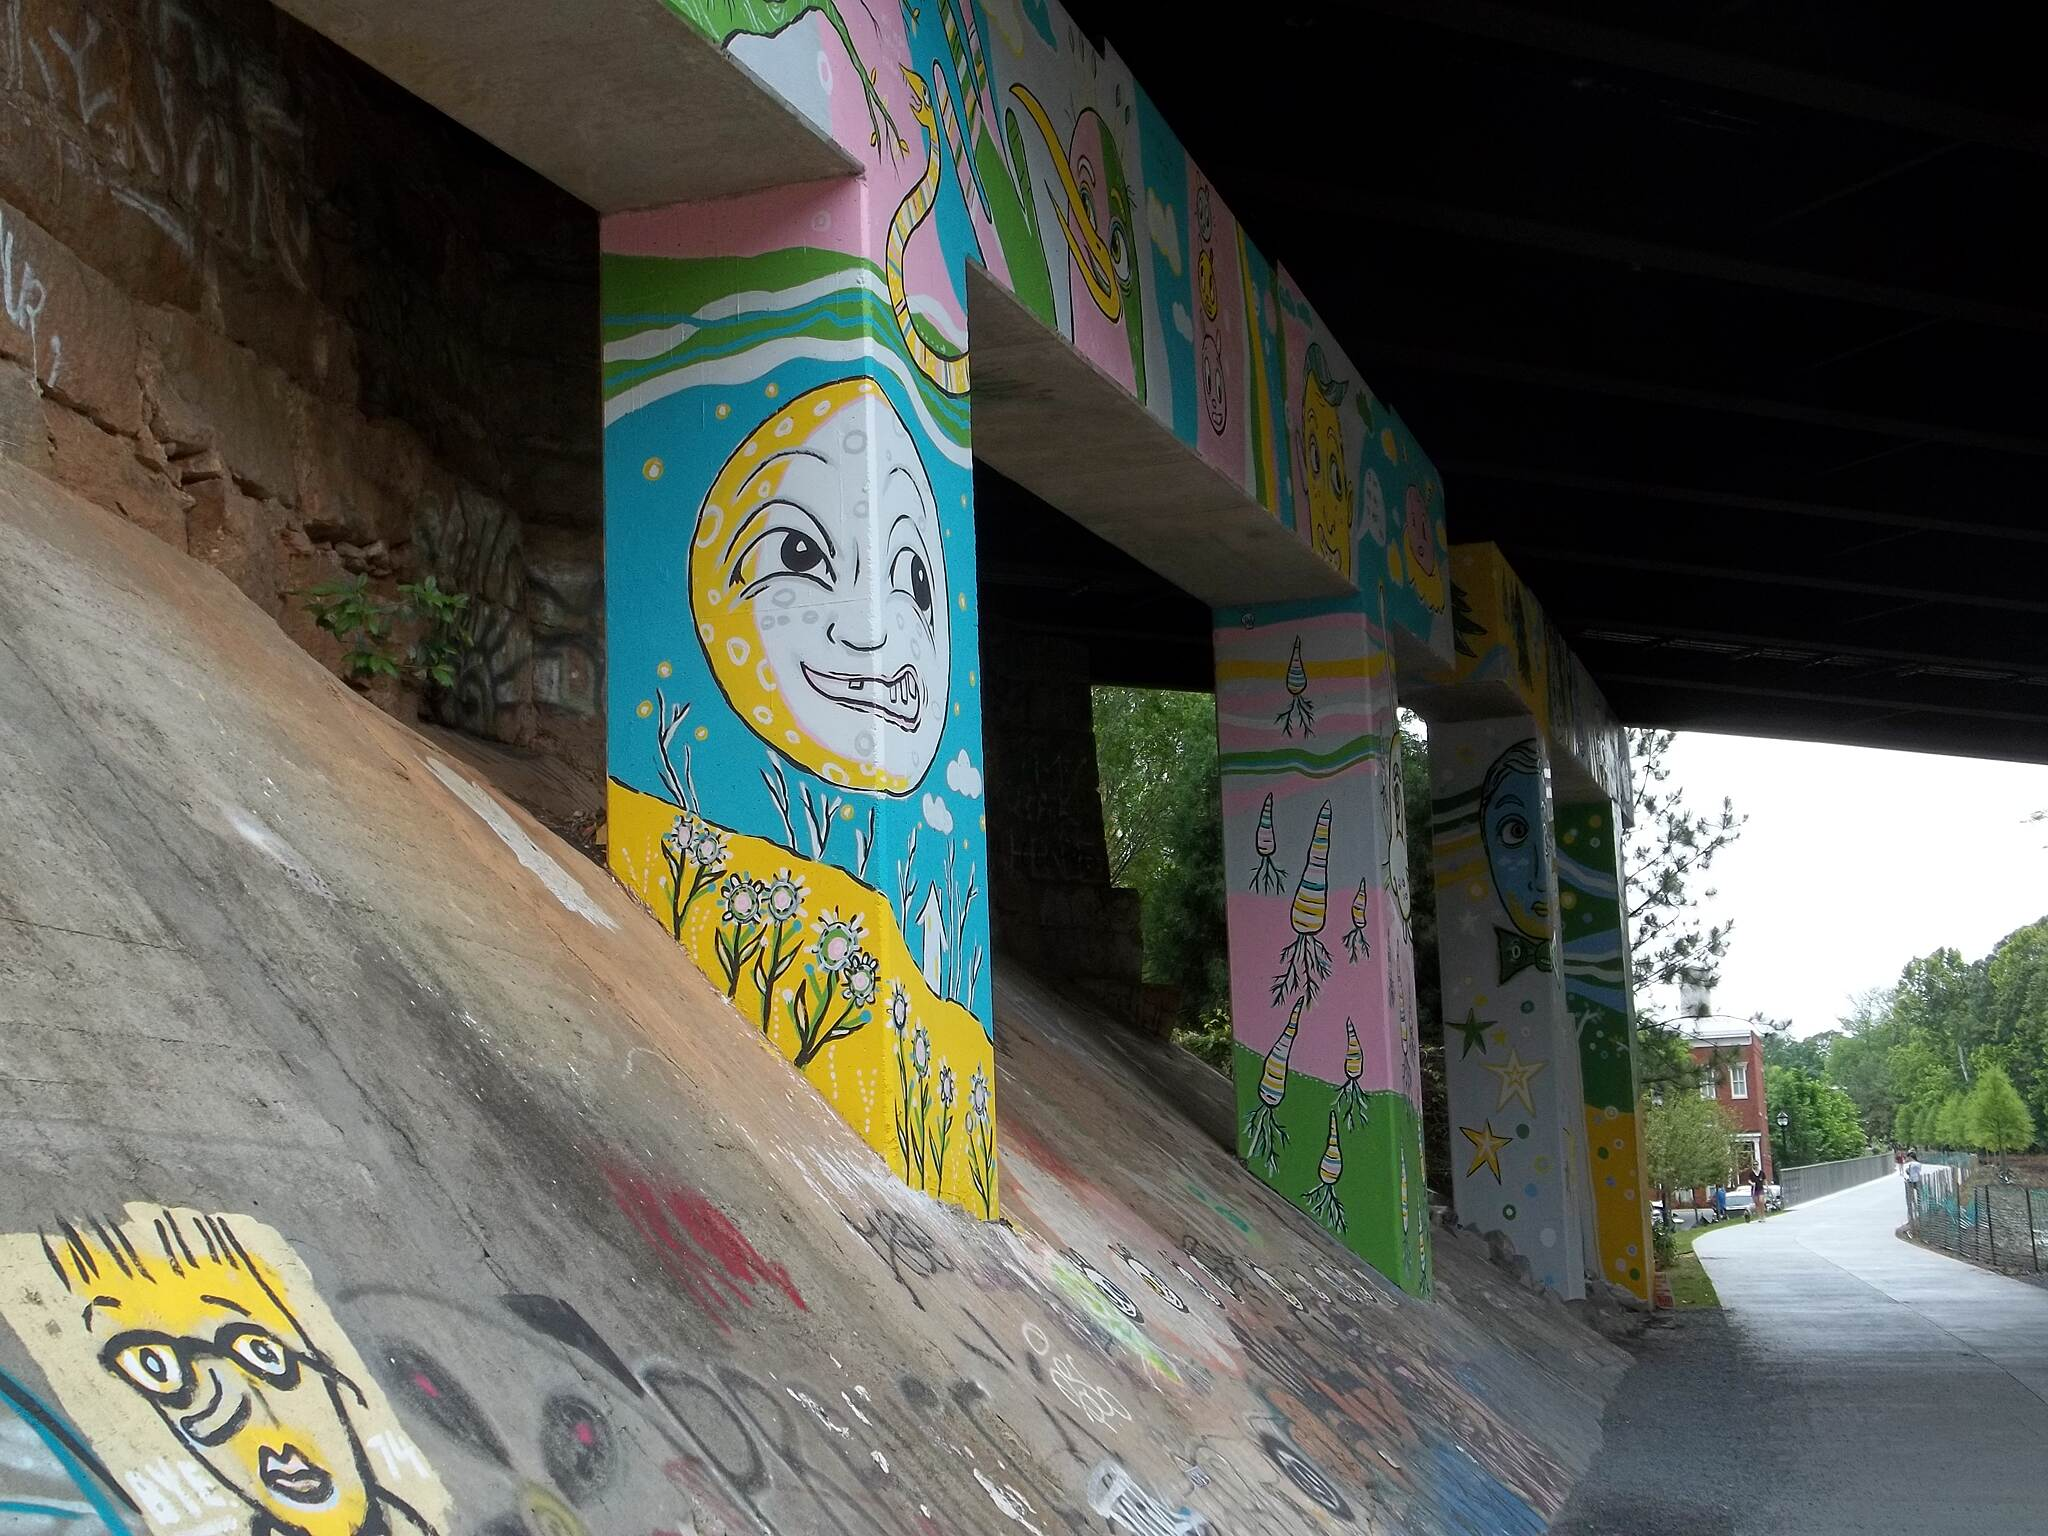 Eastside Trail (Atlanta BeltLine) Street Art Whimsical street art adorns the North Highland Ave. bridge.